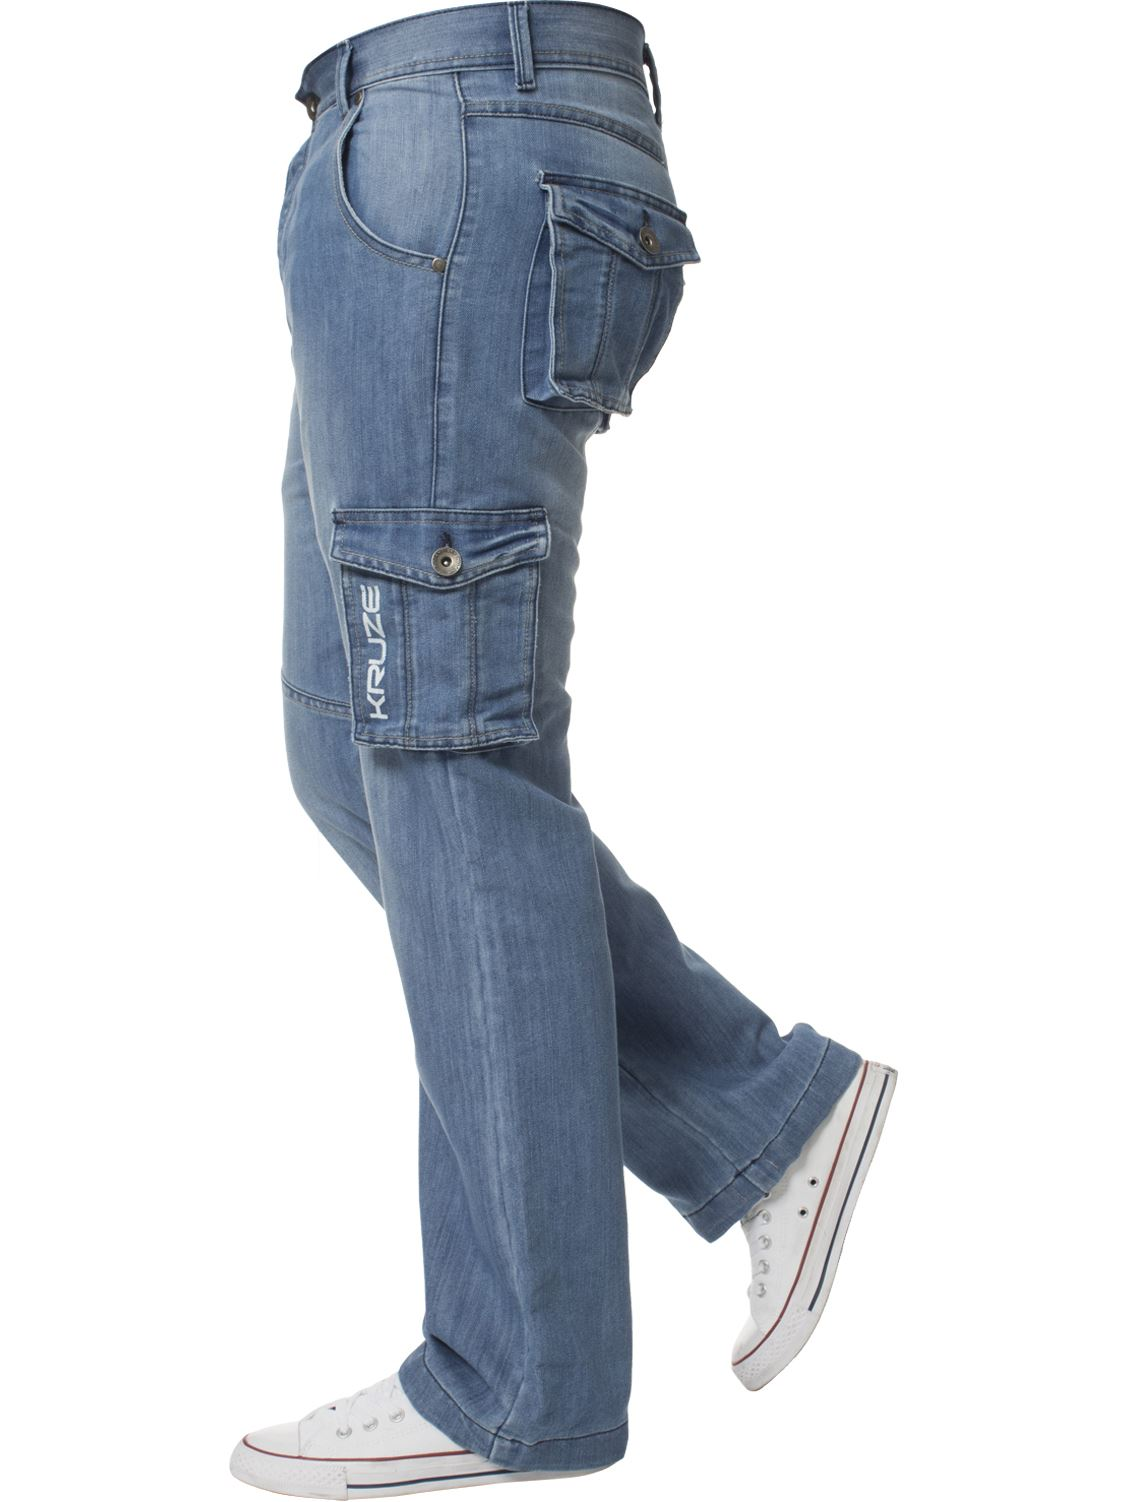 Mens-Cargo-Jeans-Combat-Trousers-Heavy-Duty-Work-Casual-Big-Tall-Denim-Pants thumbnail 84